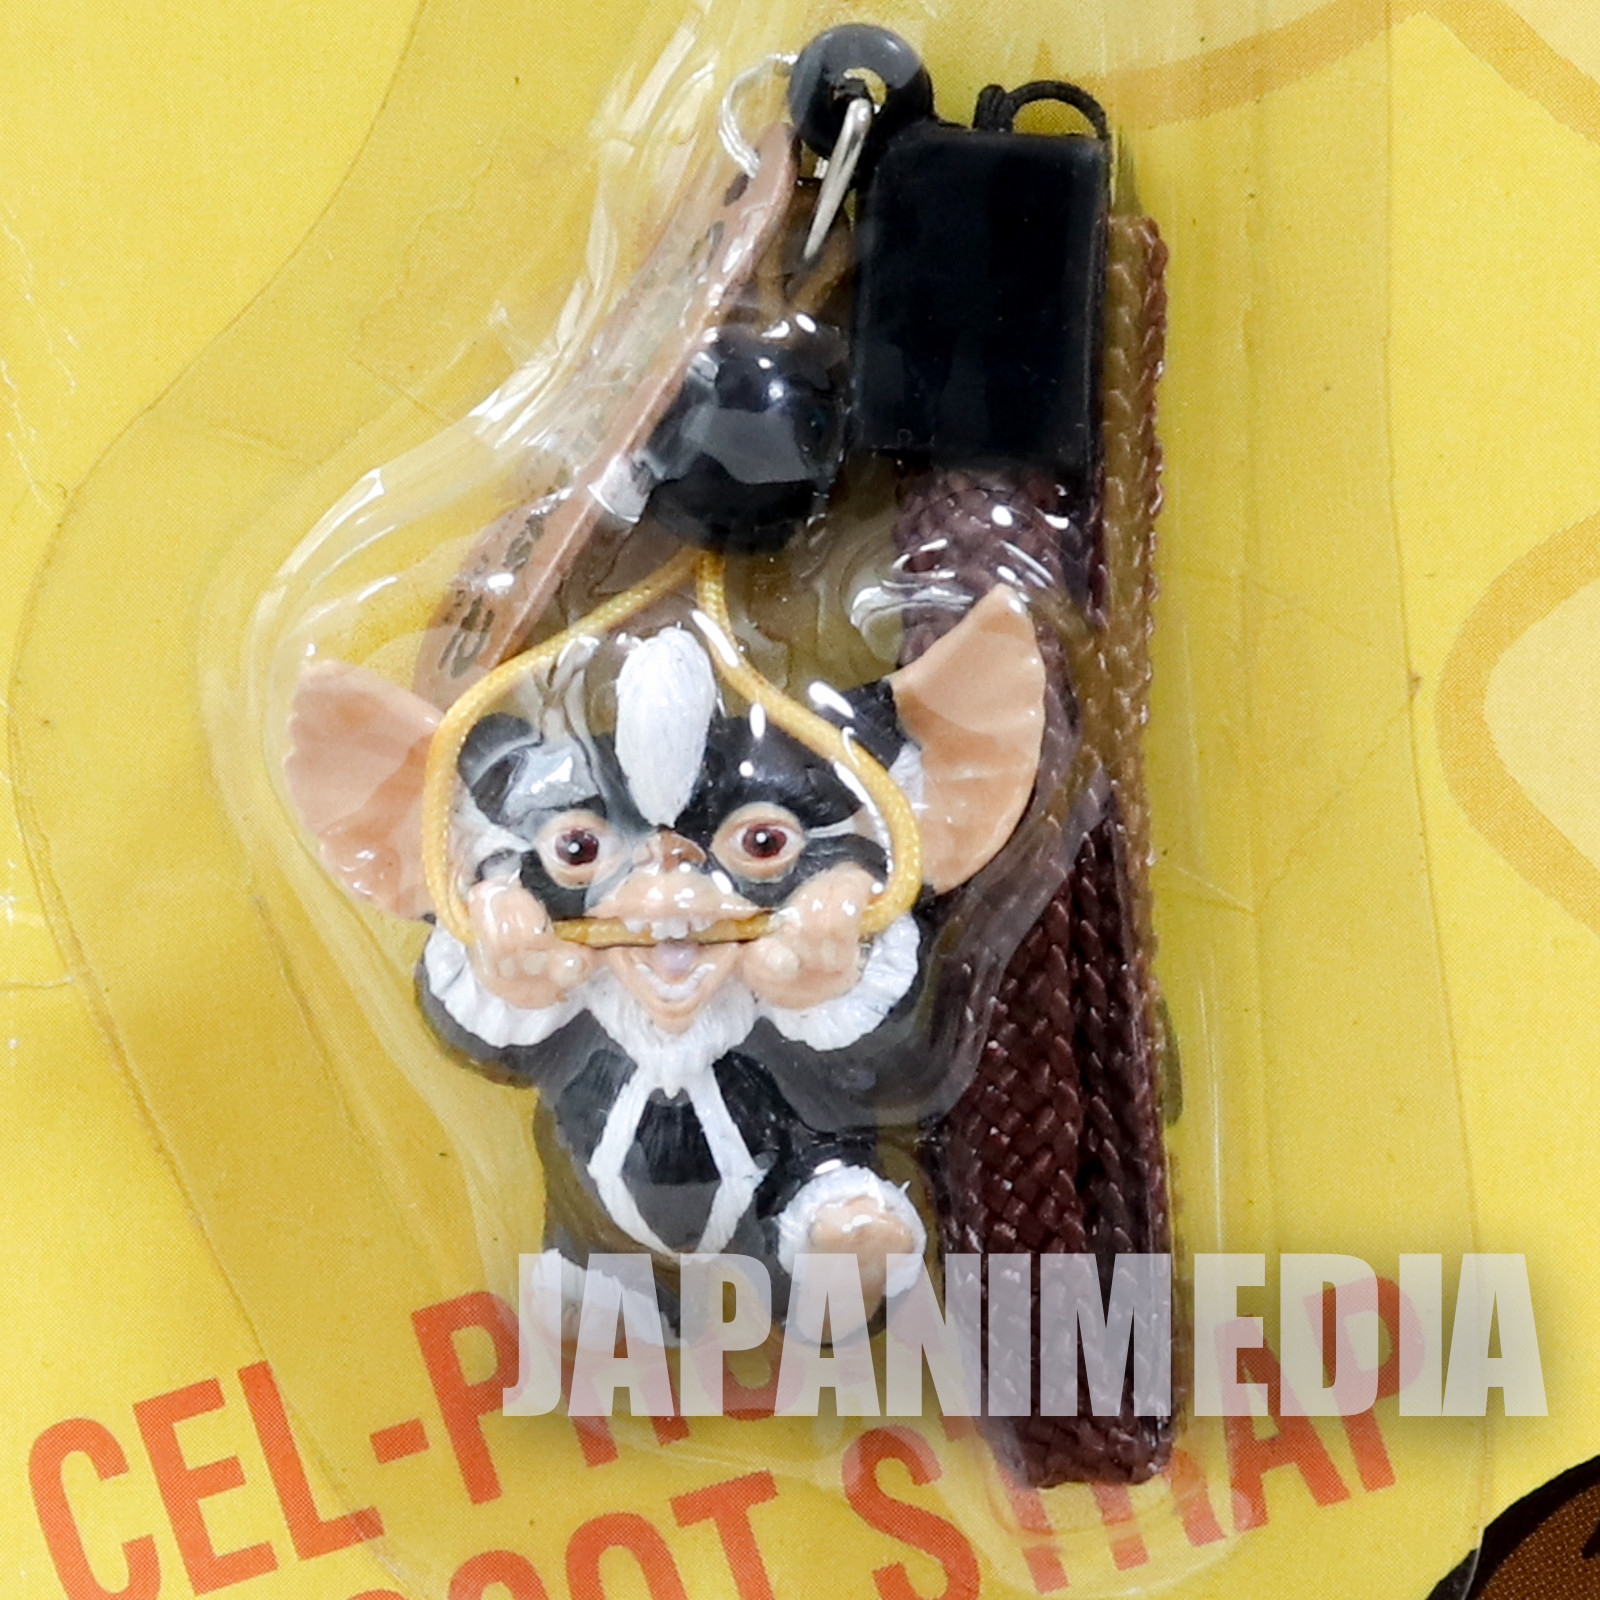 Gremlins 2 The New Batch Mohawk Figure Mobile Strap Jun Planning JAPAN